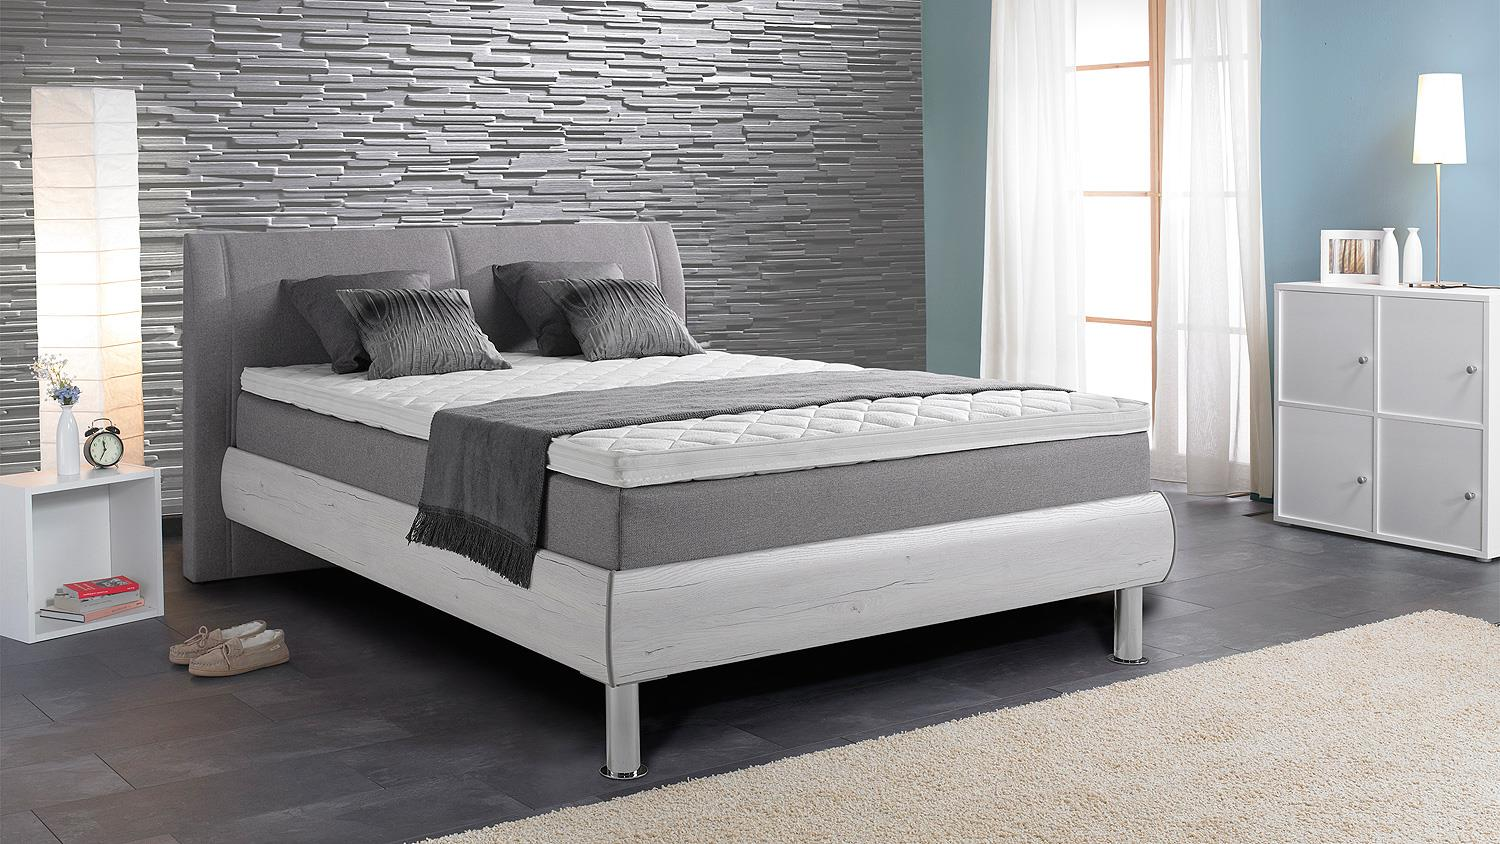 boxspringbett henning grau san remo eiche wei 140x200 cm. Black Bedroom Furniture Sets. Home Design Ideas